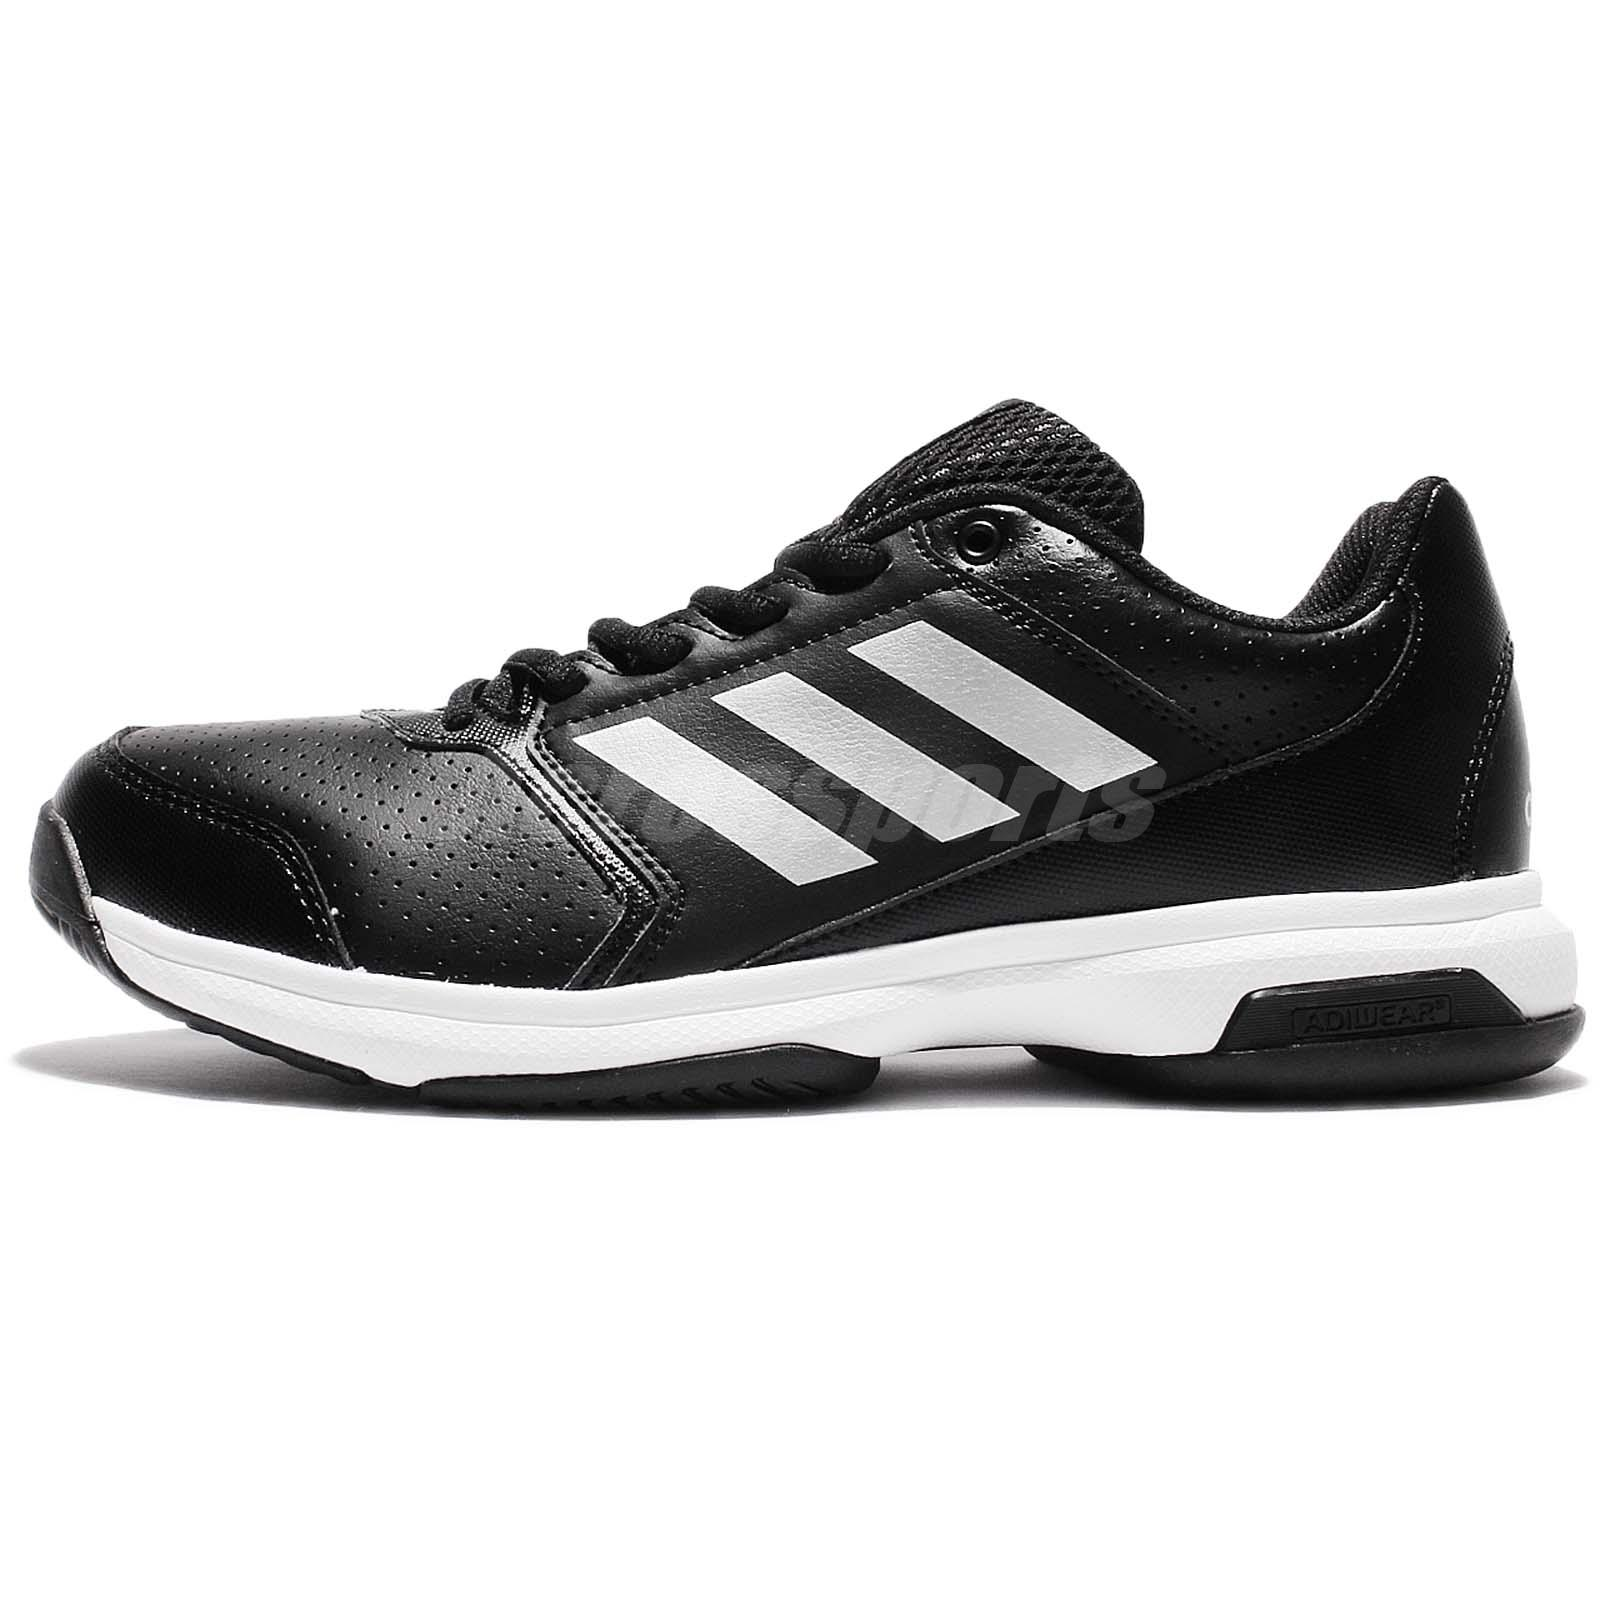 premium selection 4d779 c7879 adidas Adizero Attack Black White Men Tennis Shoes Sneakers Trainers BA9083